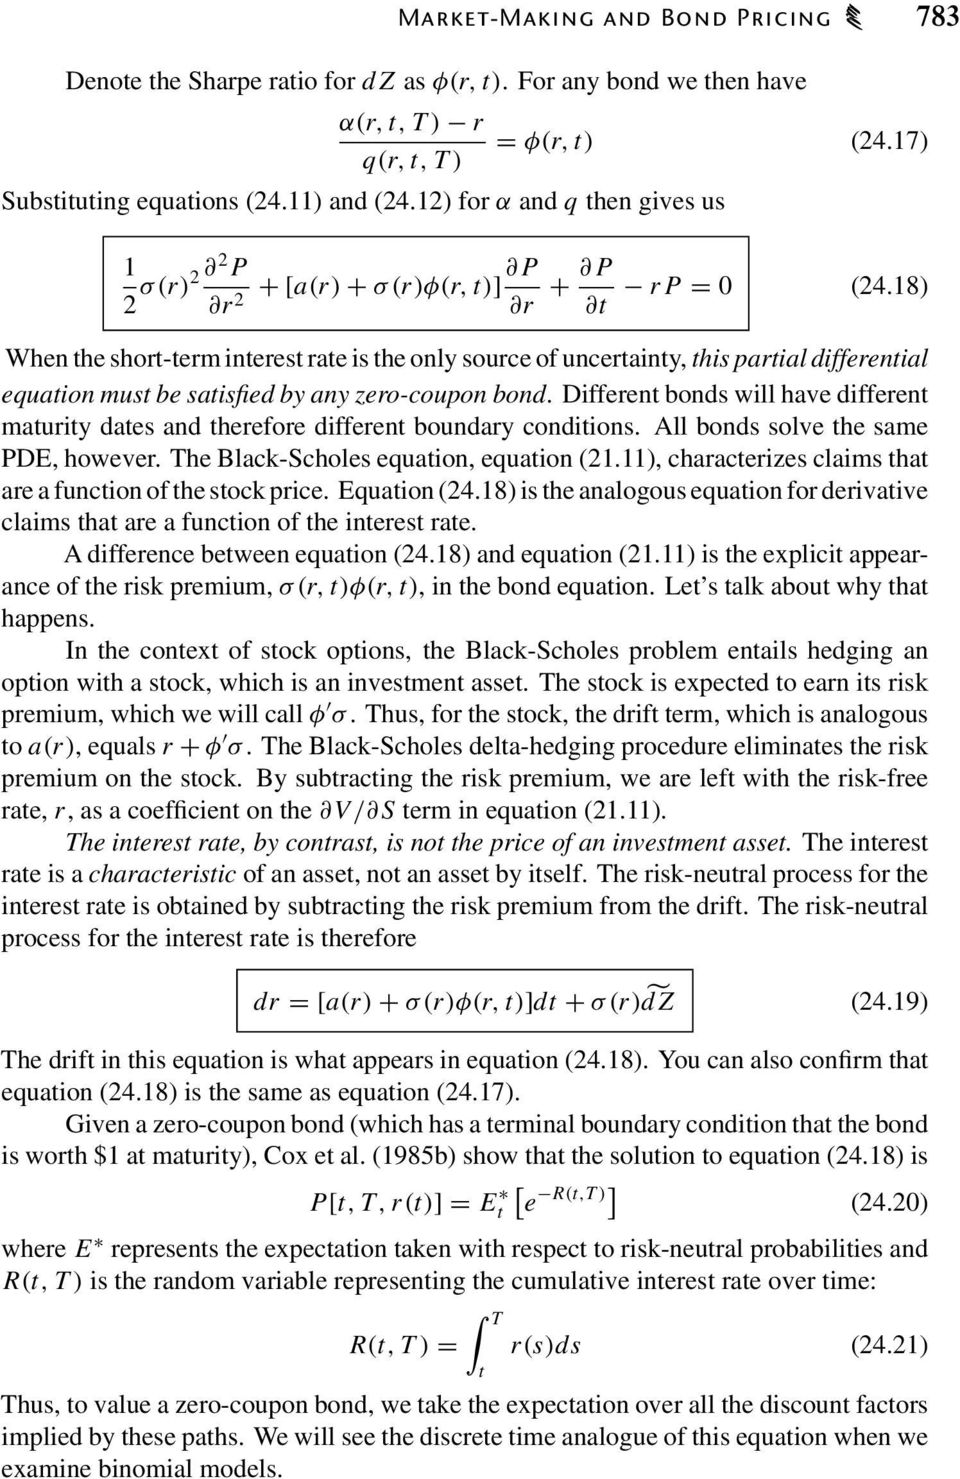 8) When the short-term interest rate is the only source of uncertainty, this partial differential equation must be satisfied by any zero-coupon bond.